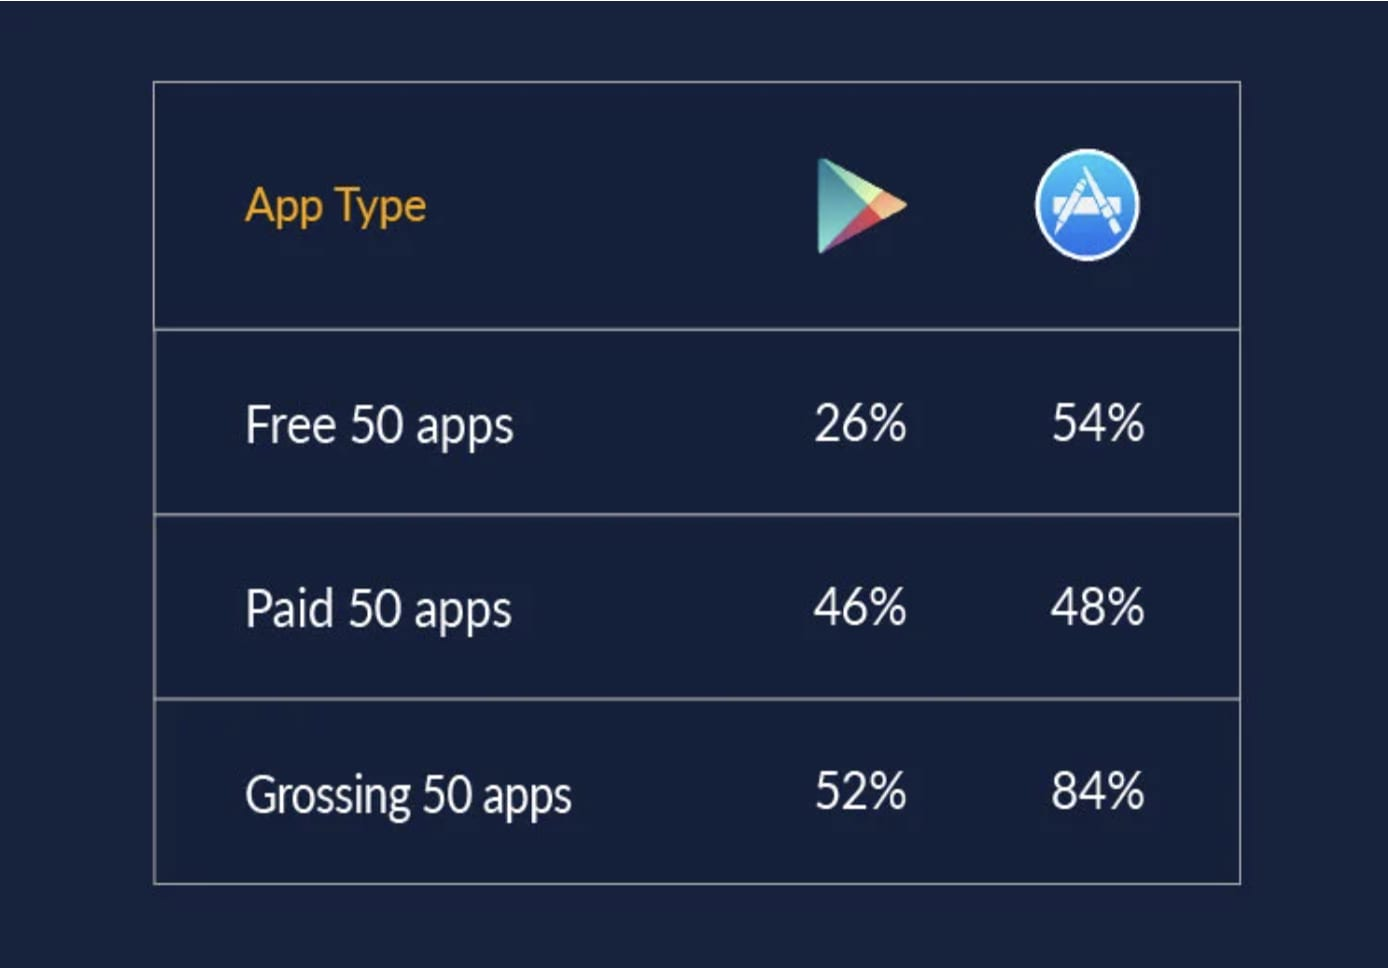 How many of the top 50 iOS apps are using video?